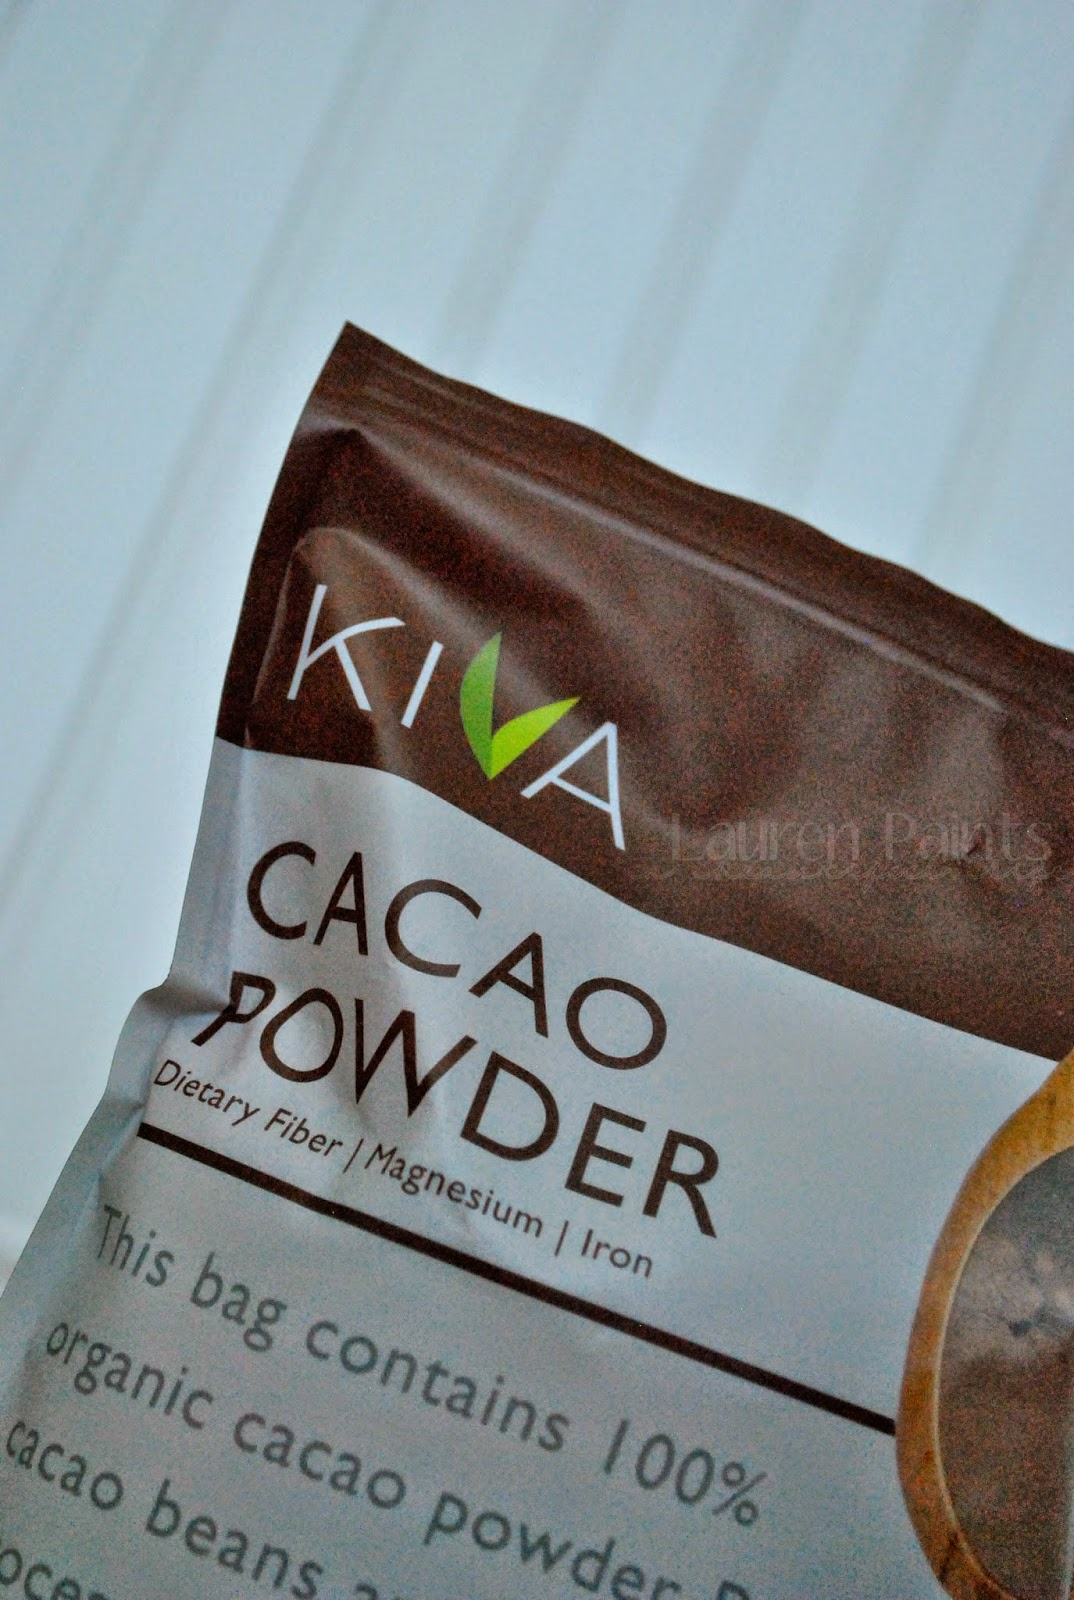 Kiva Cacao Powder Review